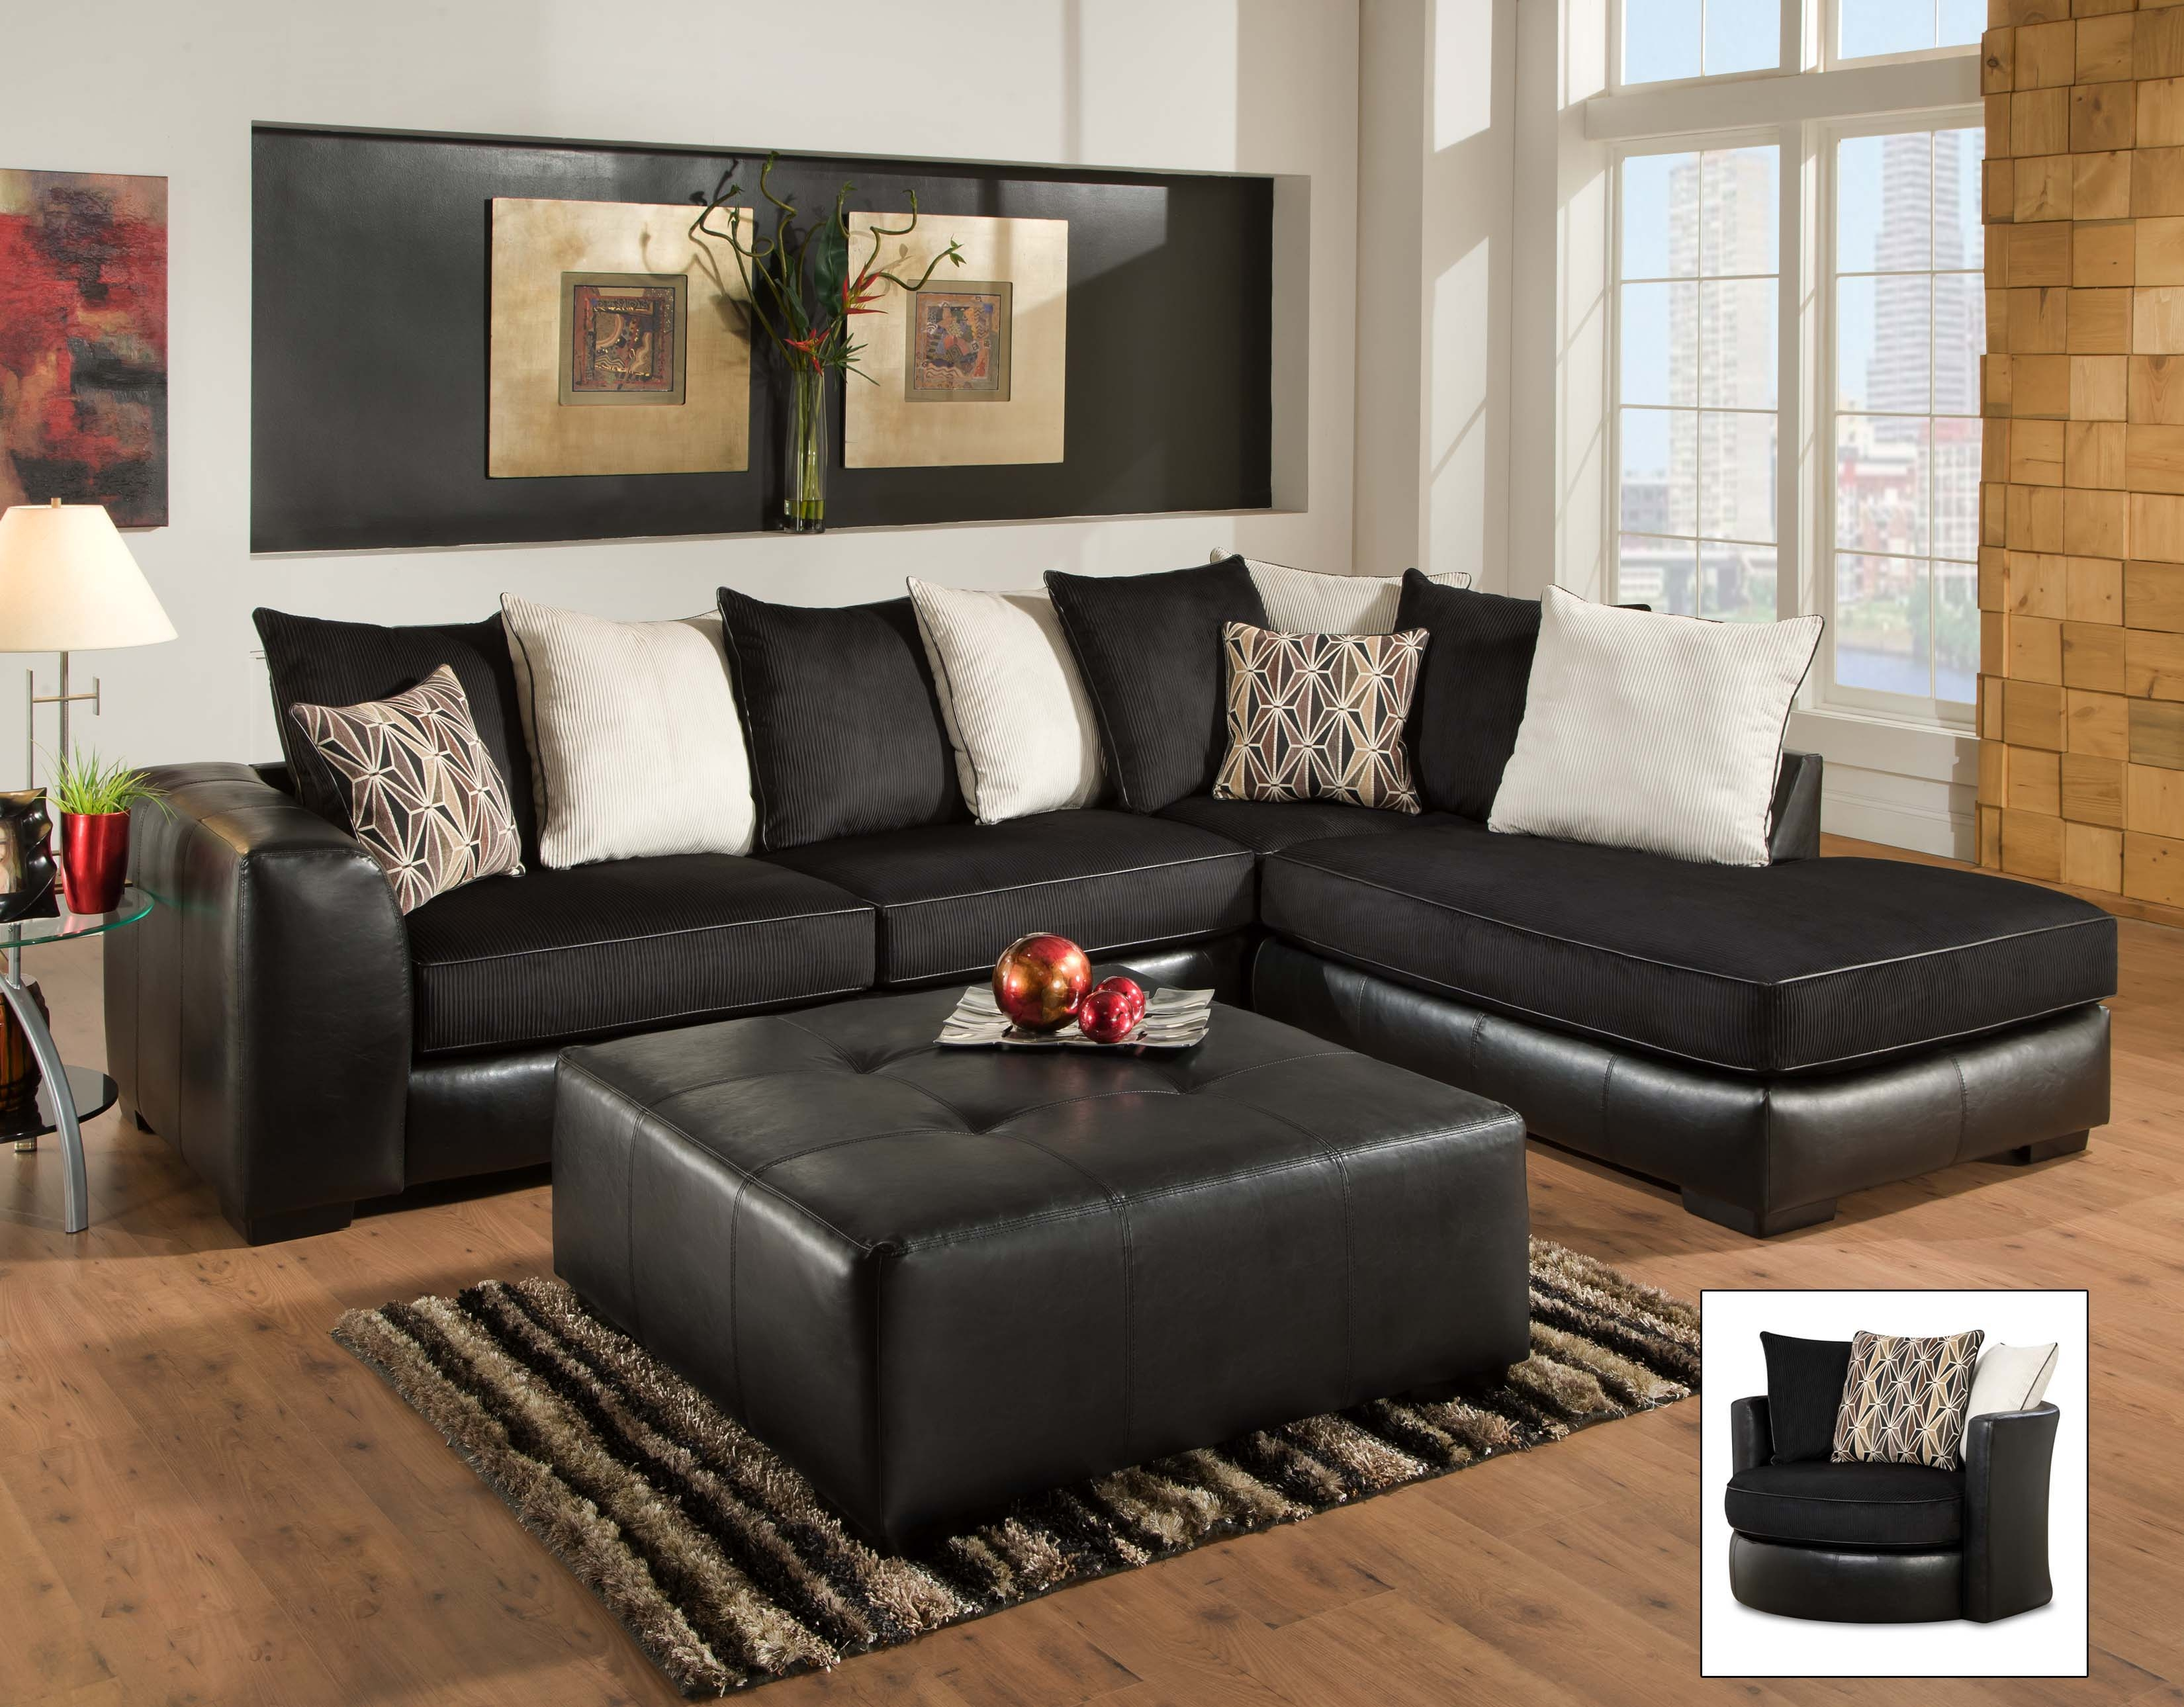 albany leather sofa air bed mattress industries fjellkjeden